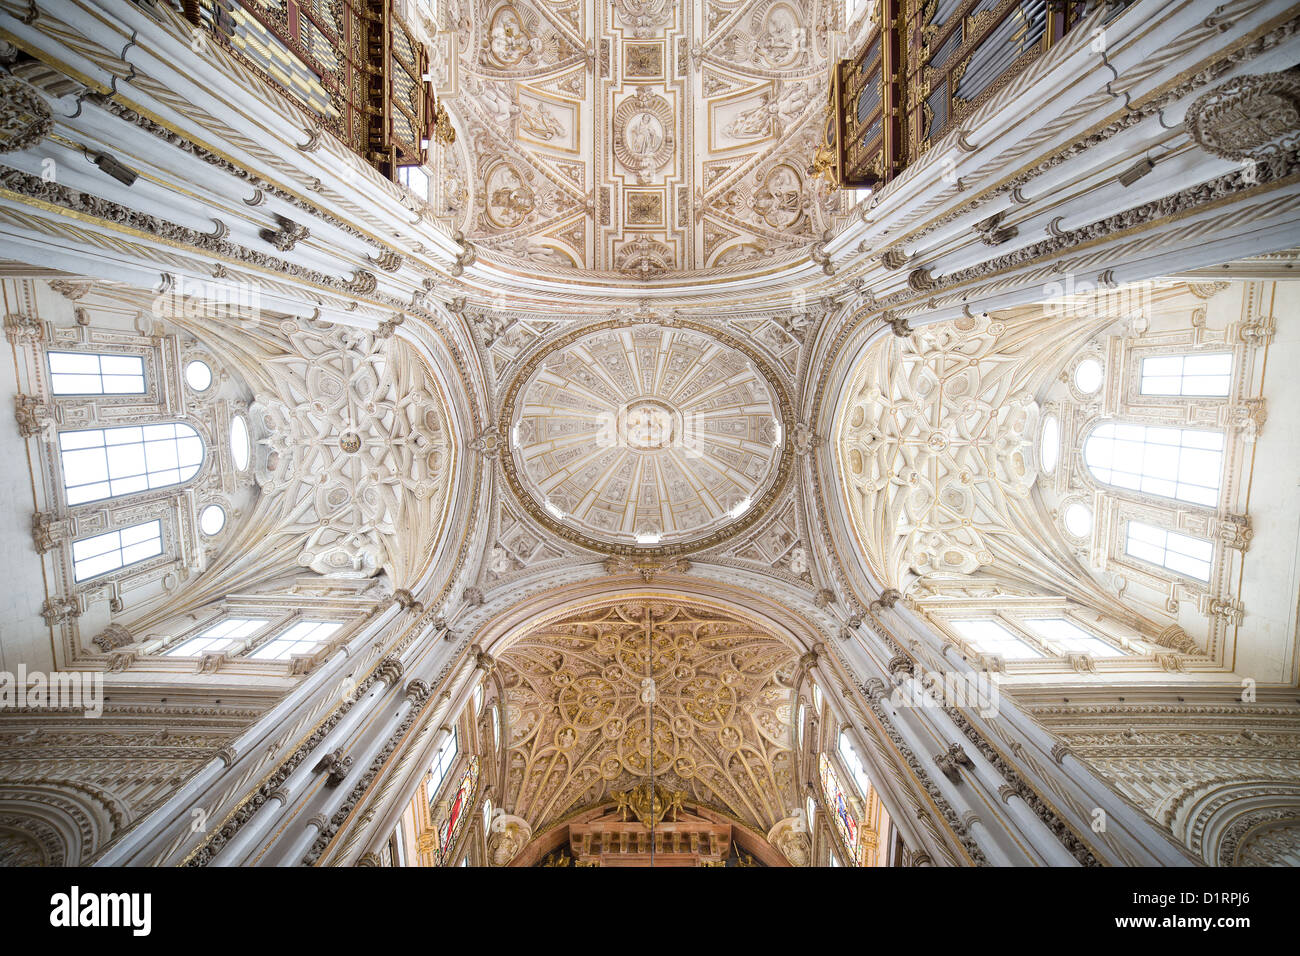 Mezquita Cathedral interior, ribbed vaulted ceilings and dome of the transept in Cordoba, Spain. - Stock Image